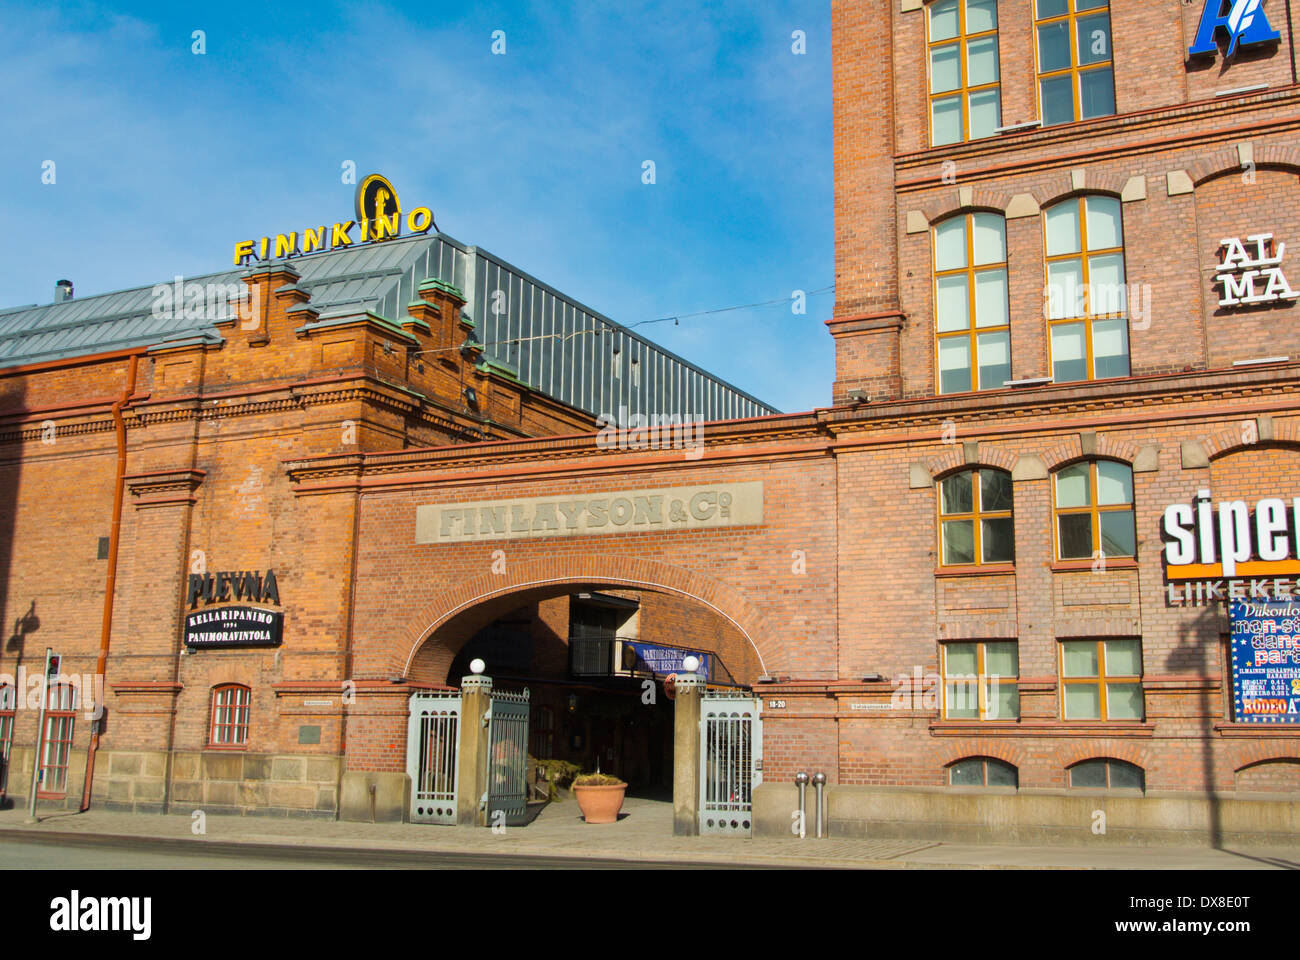 Finlayson, converted former industrial buildings, housing restaurants, shops and museums, central Tampere, central Finland - Stock Image